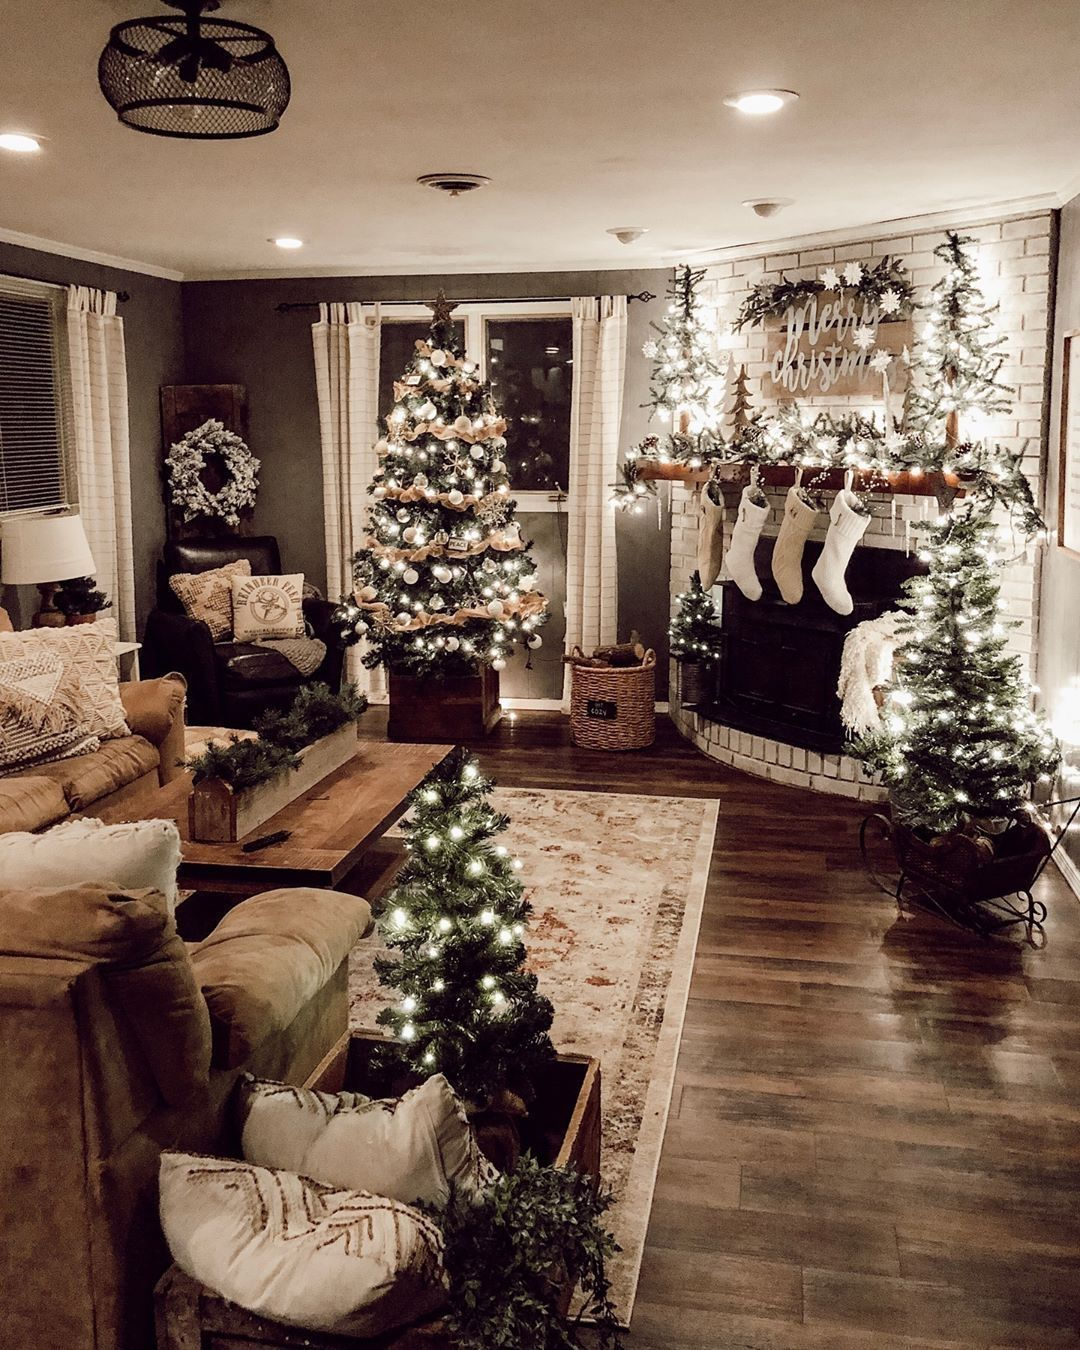 44 Inspiring Decoration Ideas for Holiday Event | Christmas ...